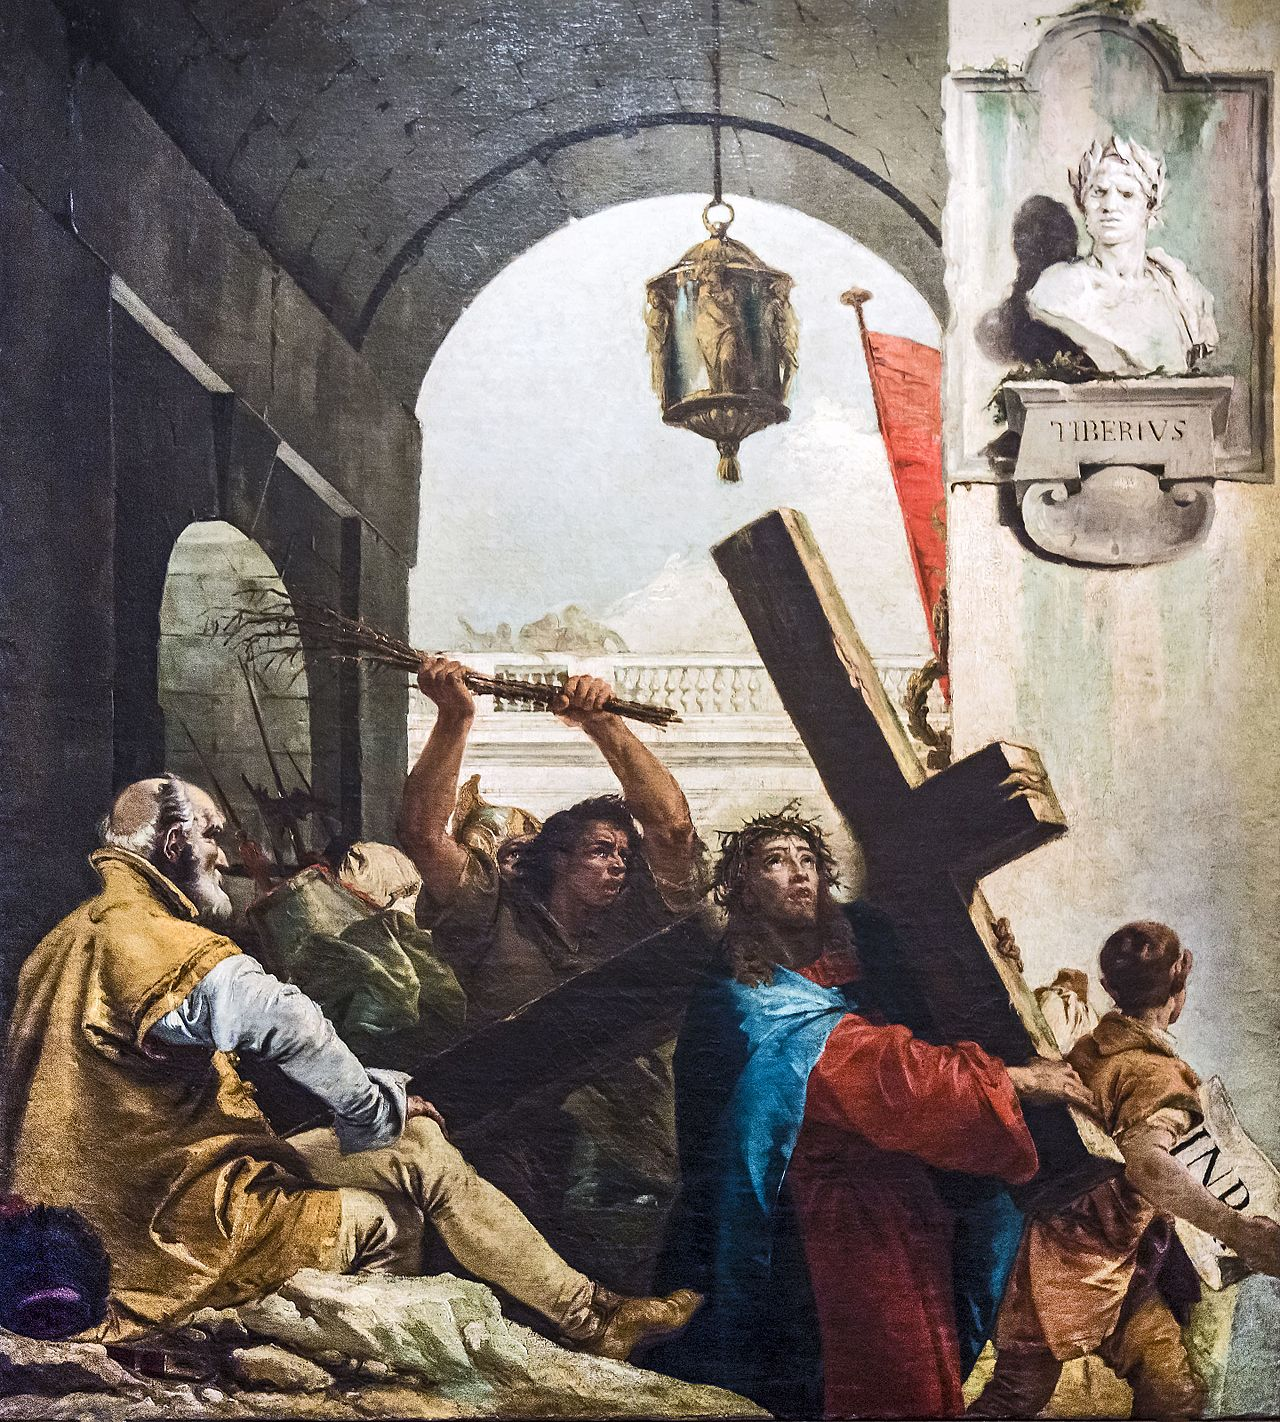 Chiesa_di_San_Polo_(Venice)_-_VIA_CRUCIS_II_-_Jesus_carries_his_cross_by_Giandomenico_Tiepolo.jpg